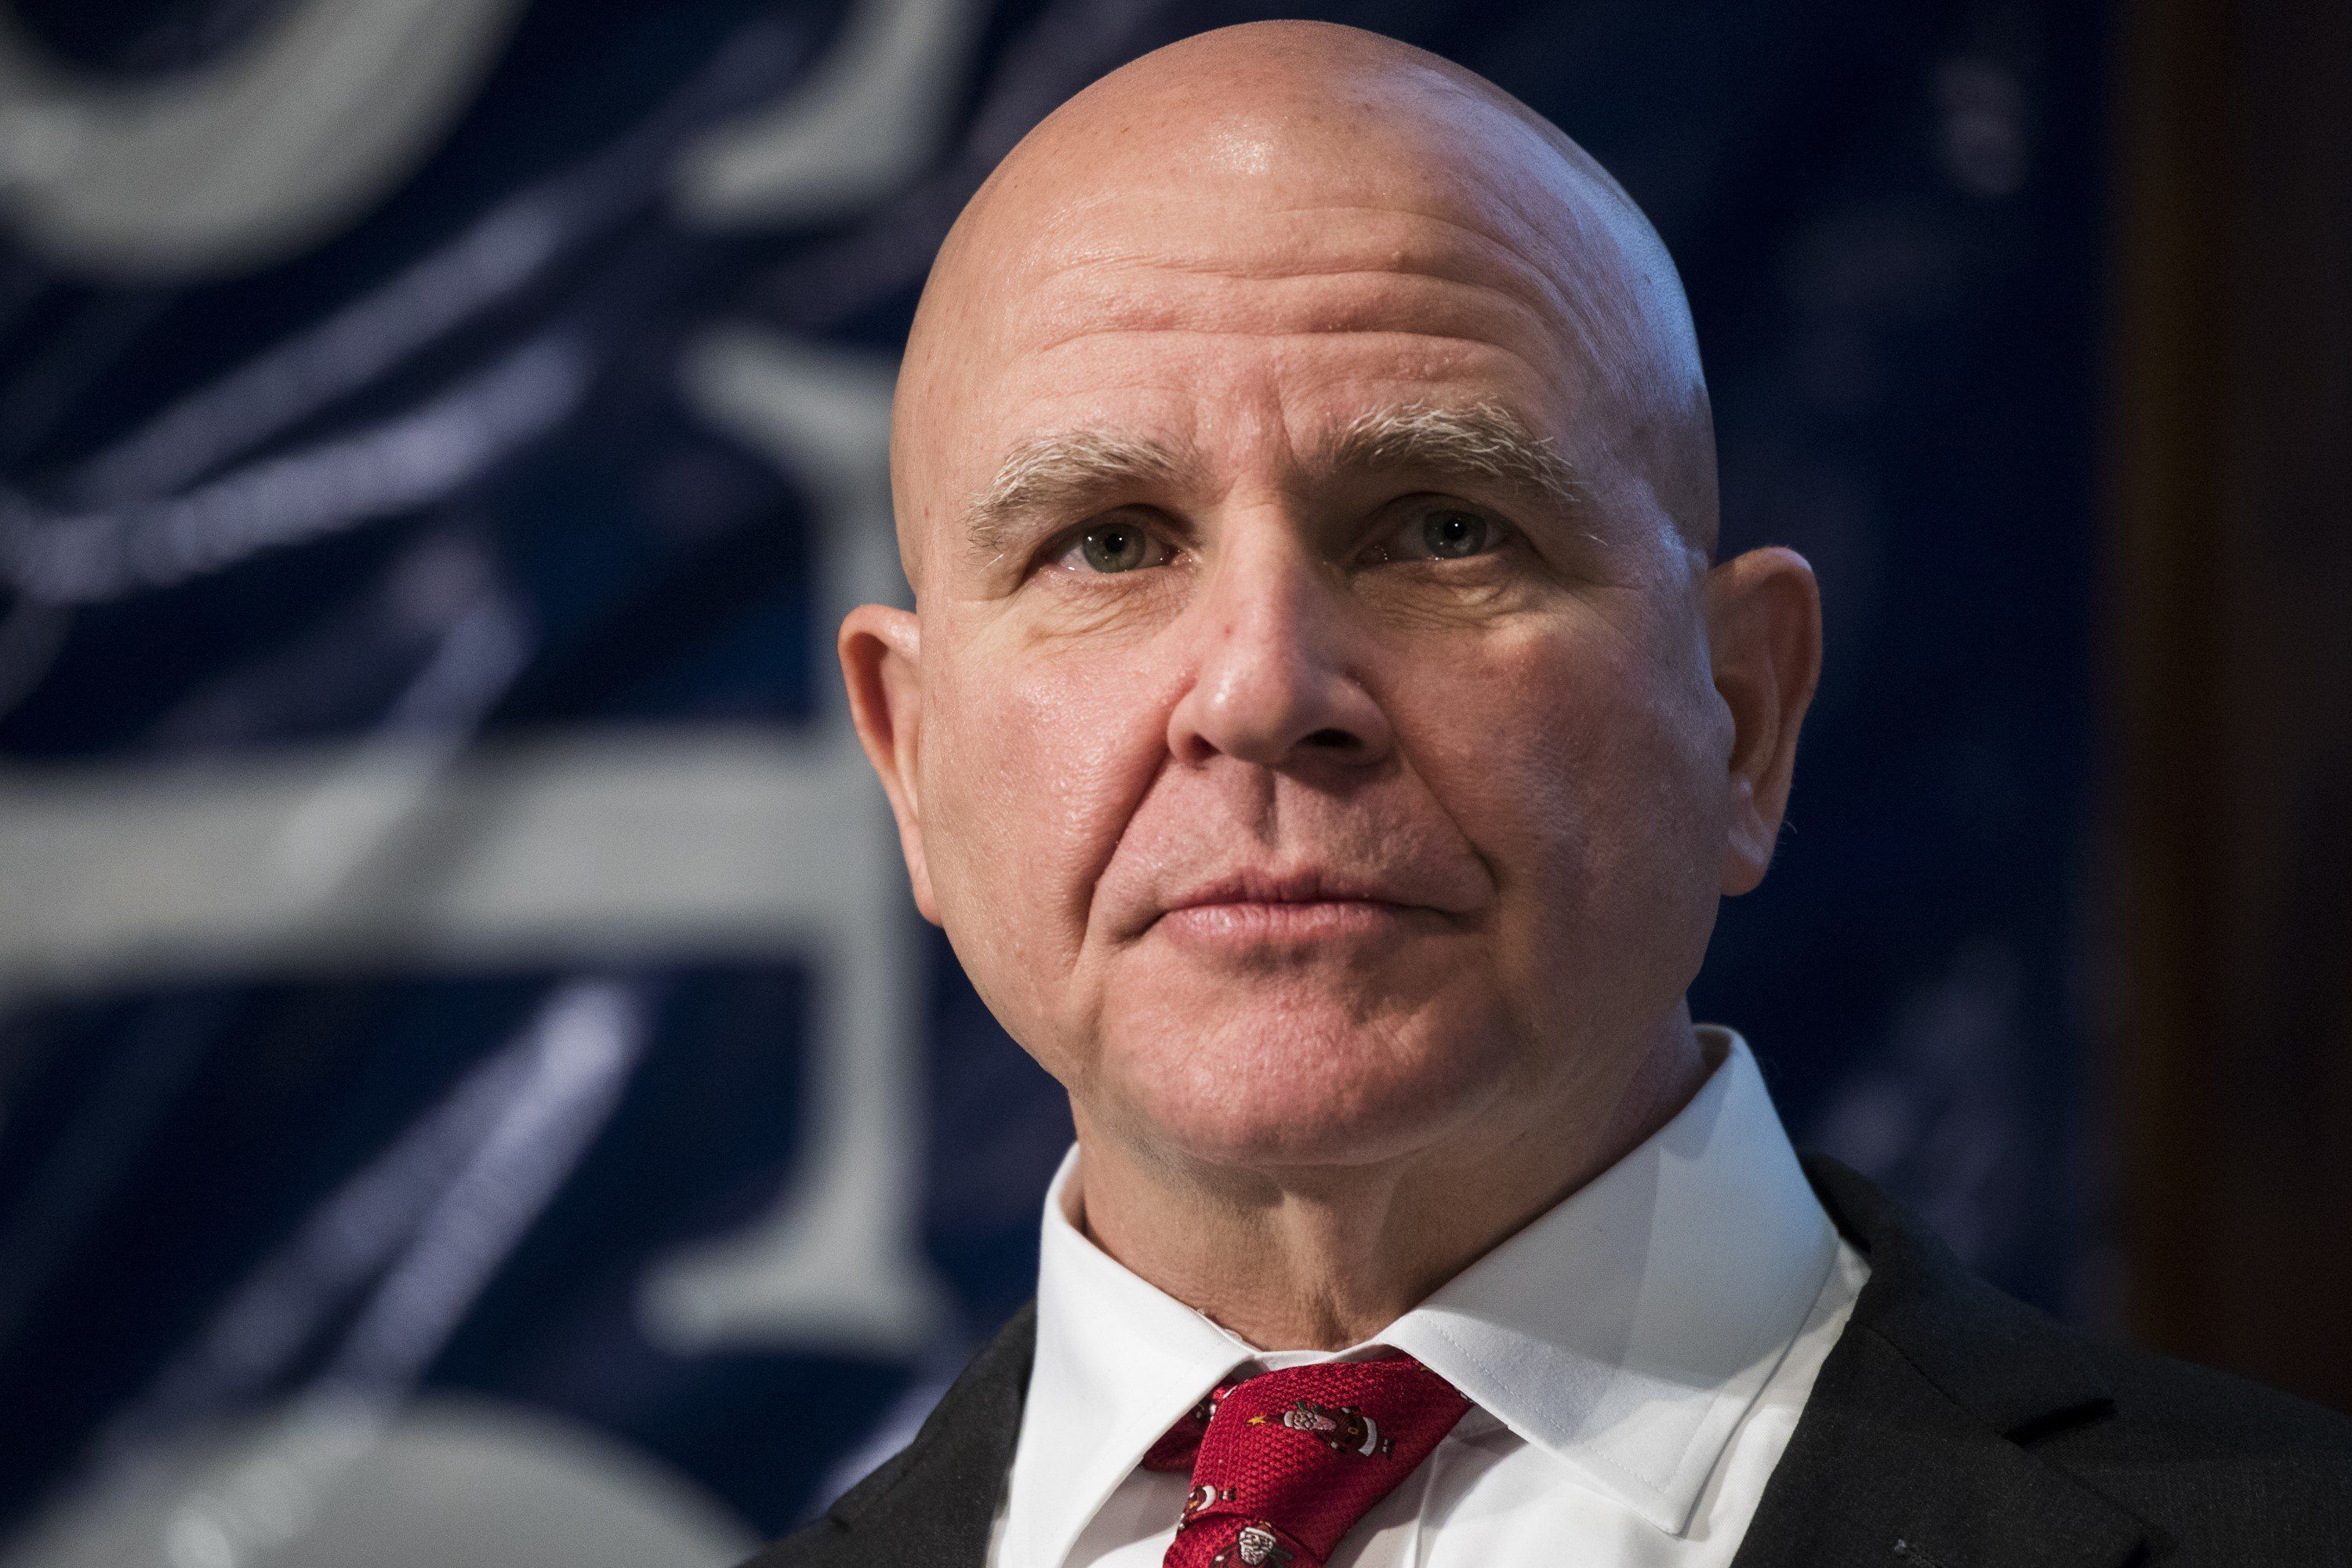 The father of former White House national security adviser H.R. McMaster died last month at a Philadelphia nursing home after